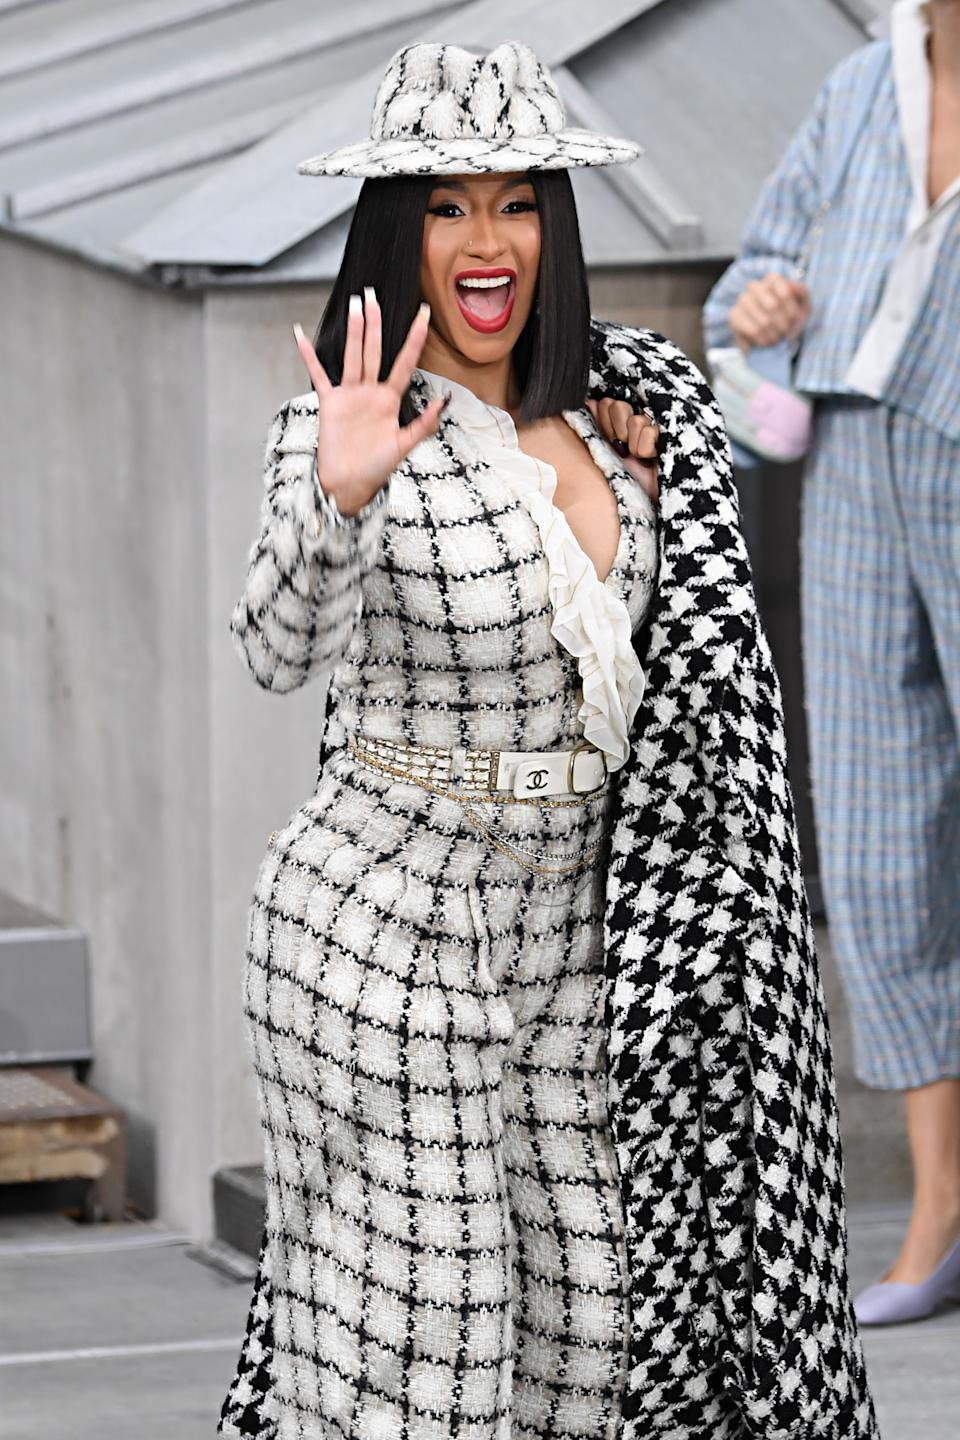 Cardi B is reportedly starting her own beauty brand. (Image via Getty Images)